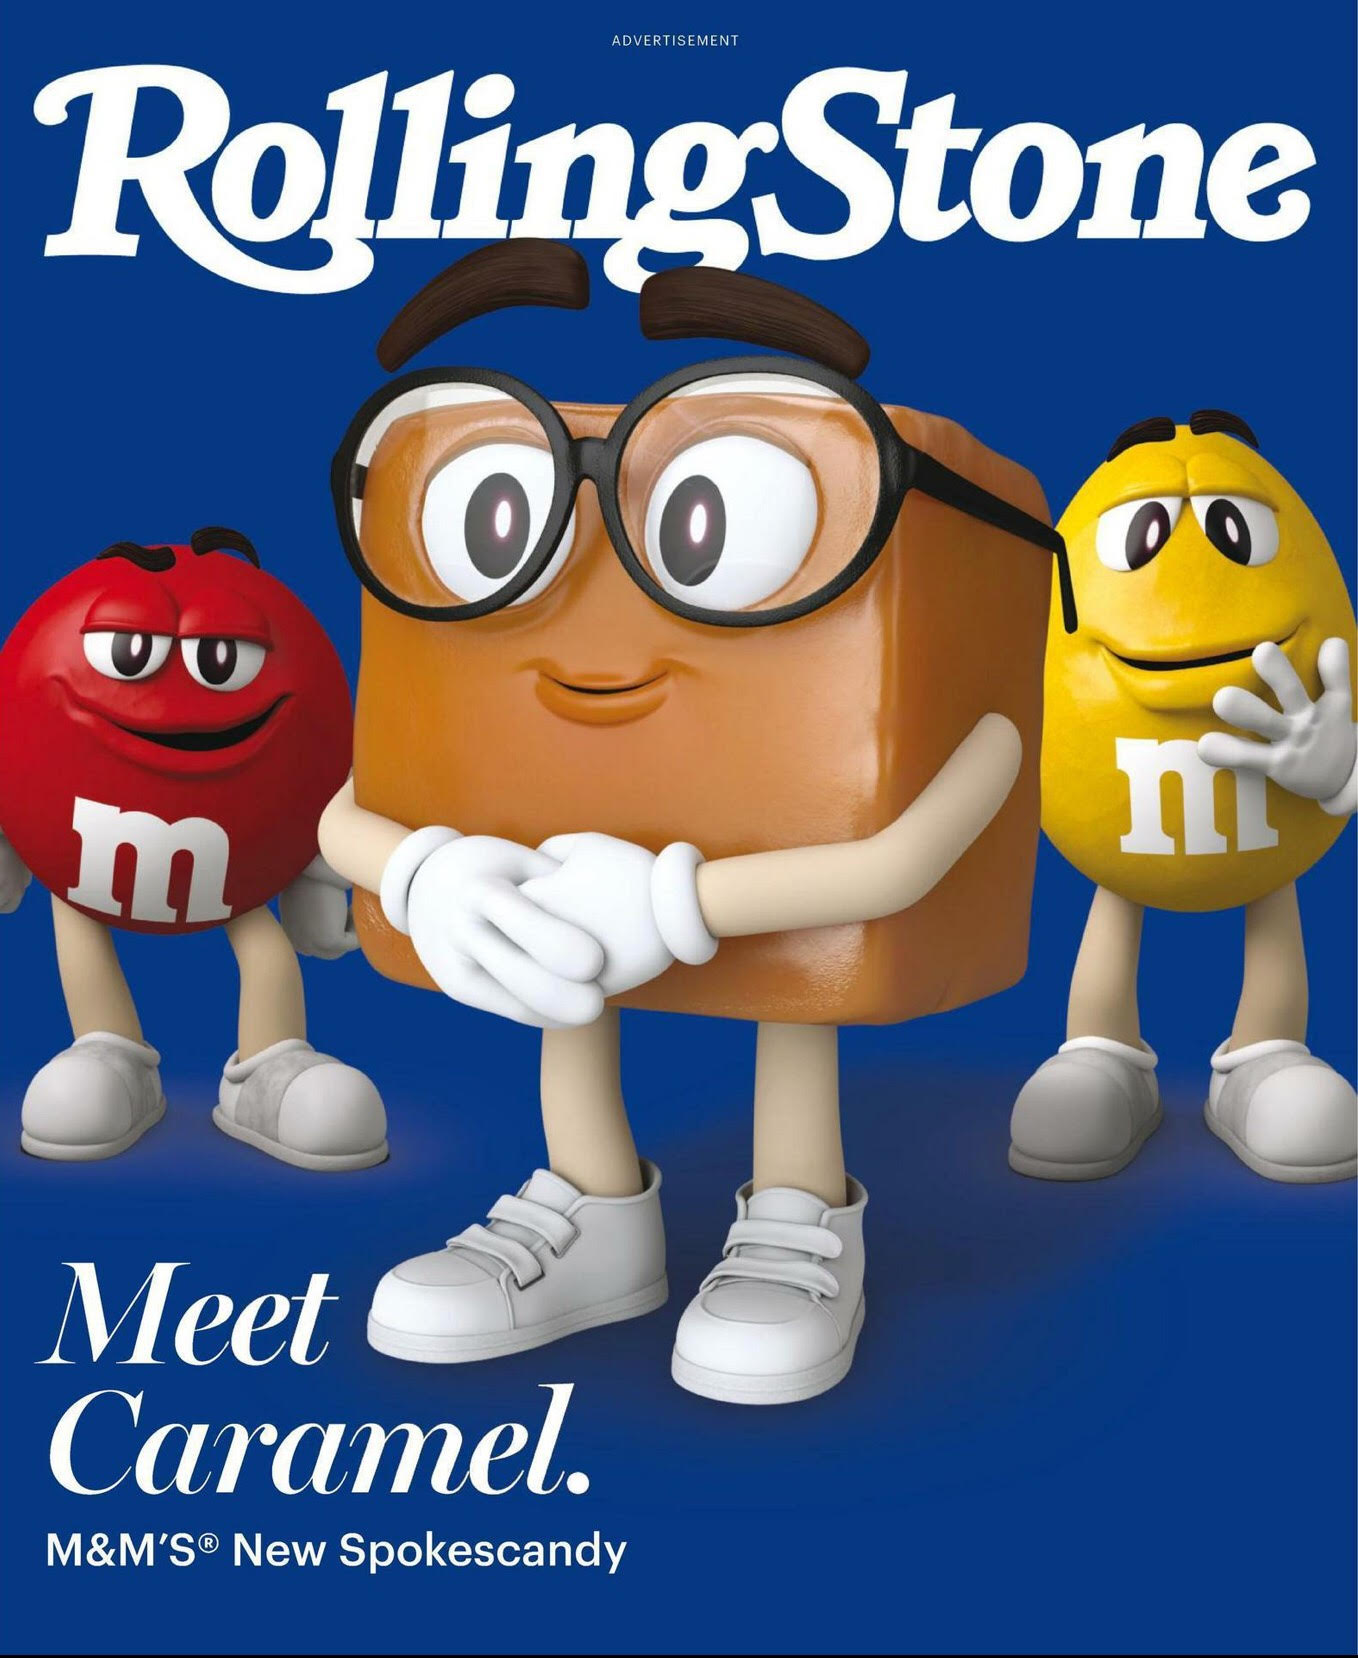 m&ms_caramel_rolling_stone